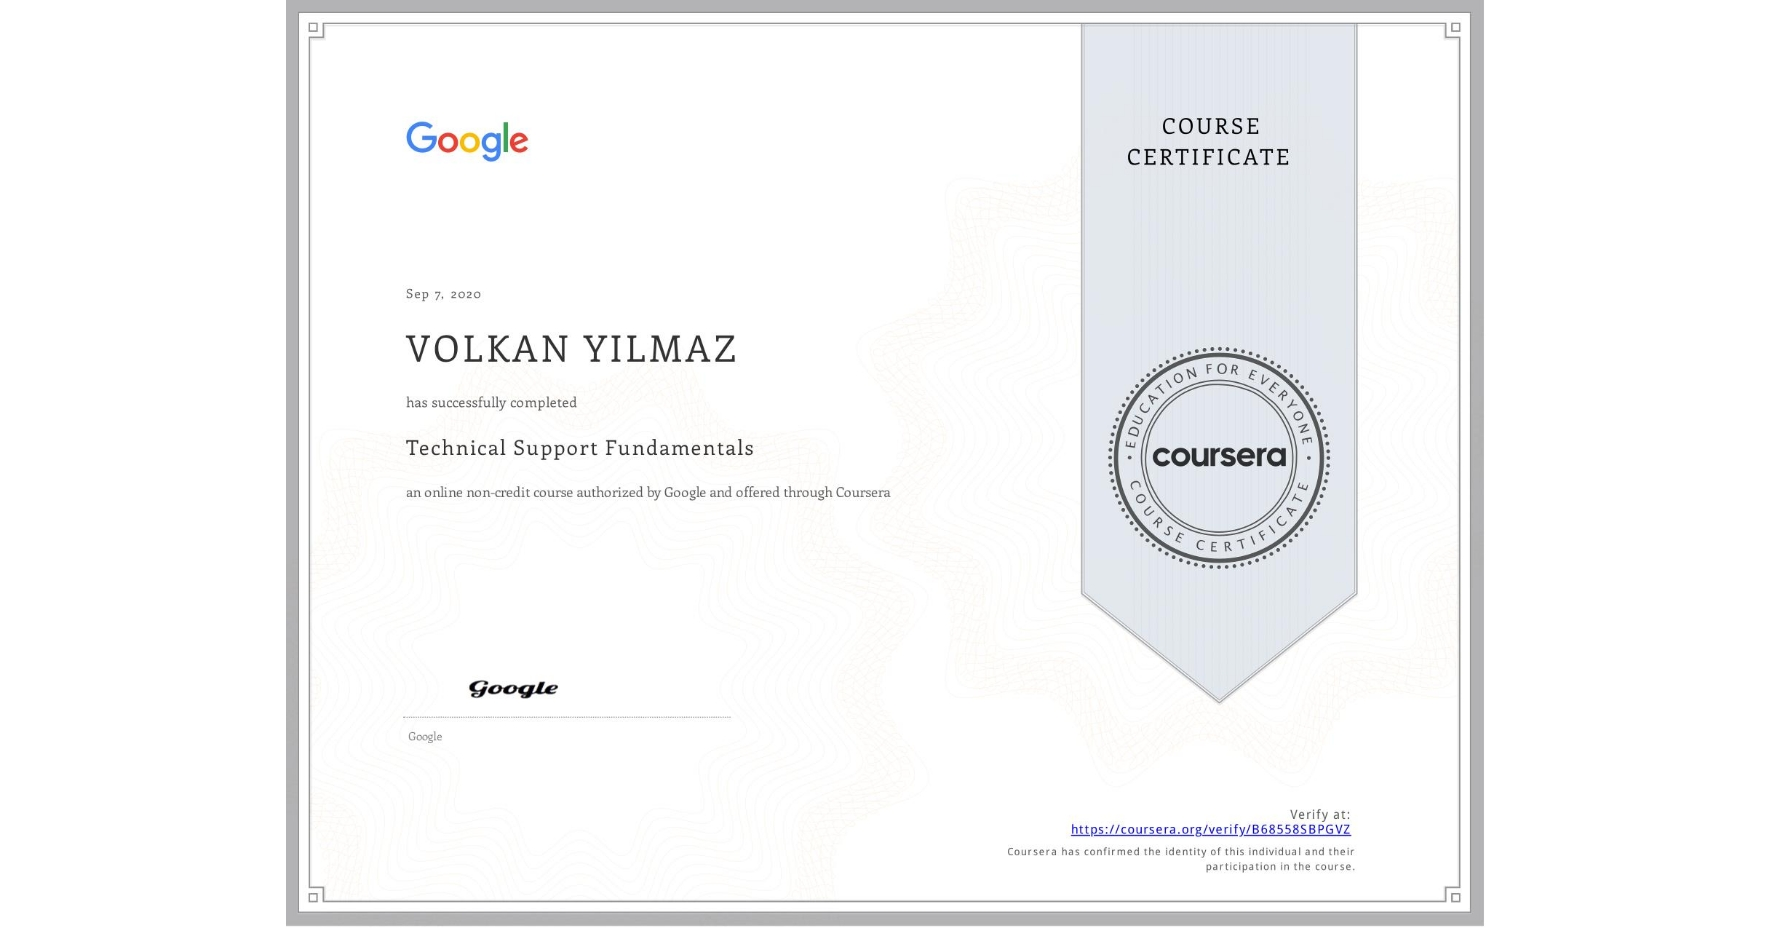 View certificate for VOLKAN YILMAZ, Technical Support Fundamentals, an online non-credit course authorized by Google and offered through Coursera